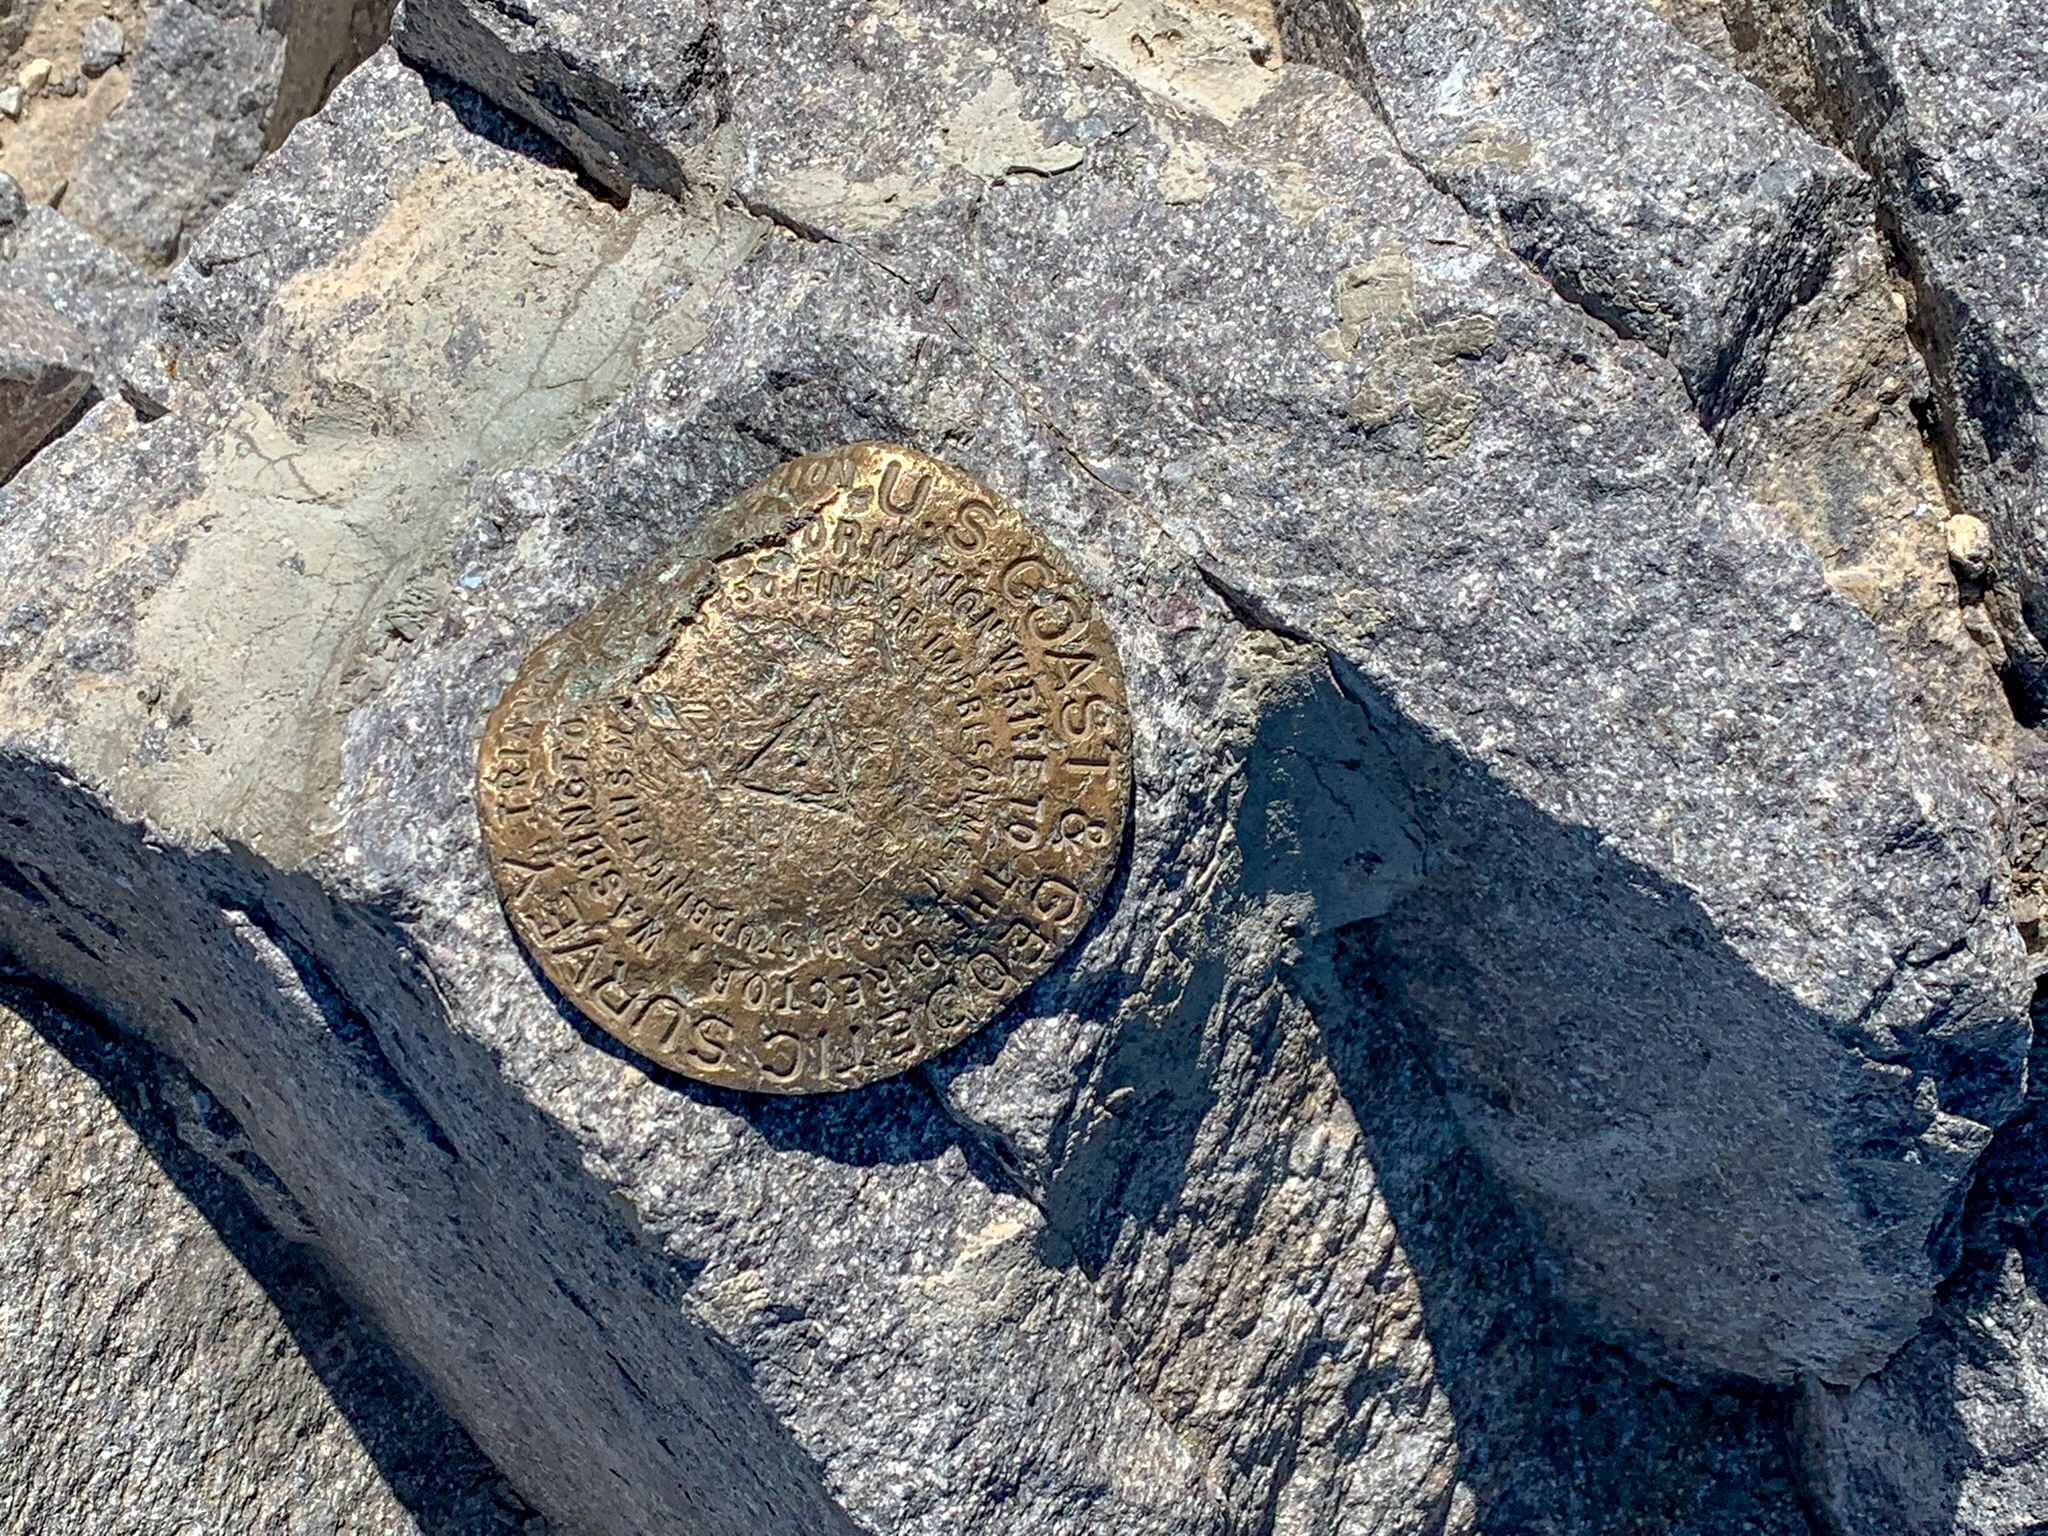 A survey marker at the summit